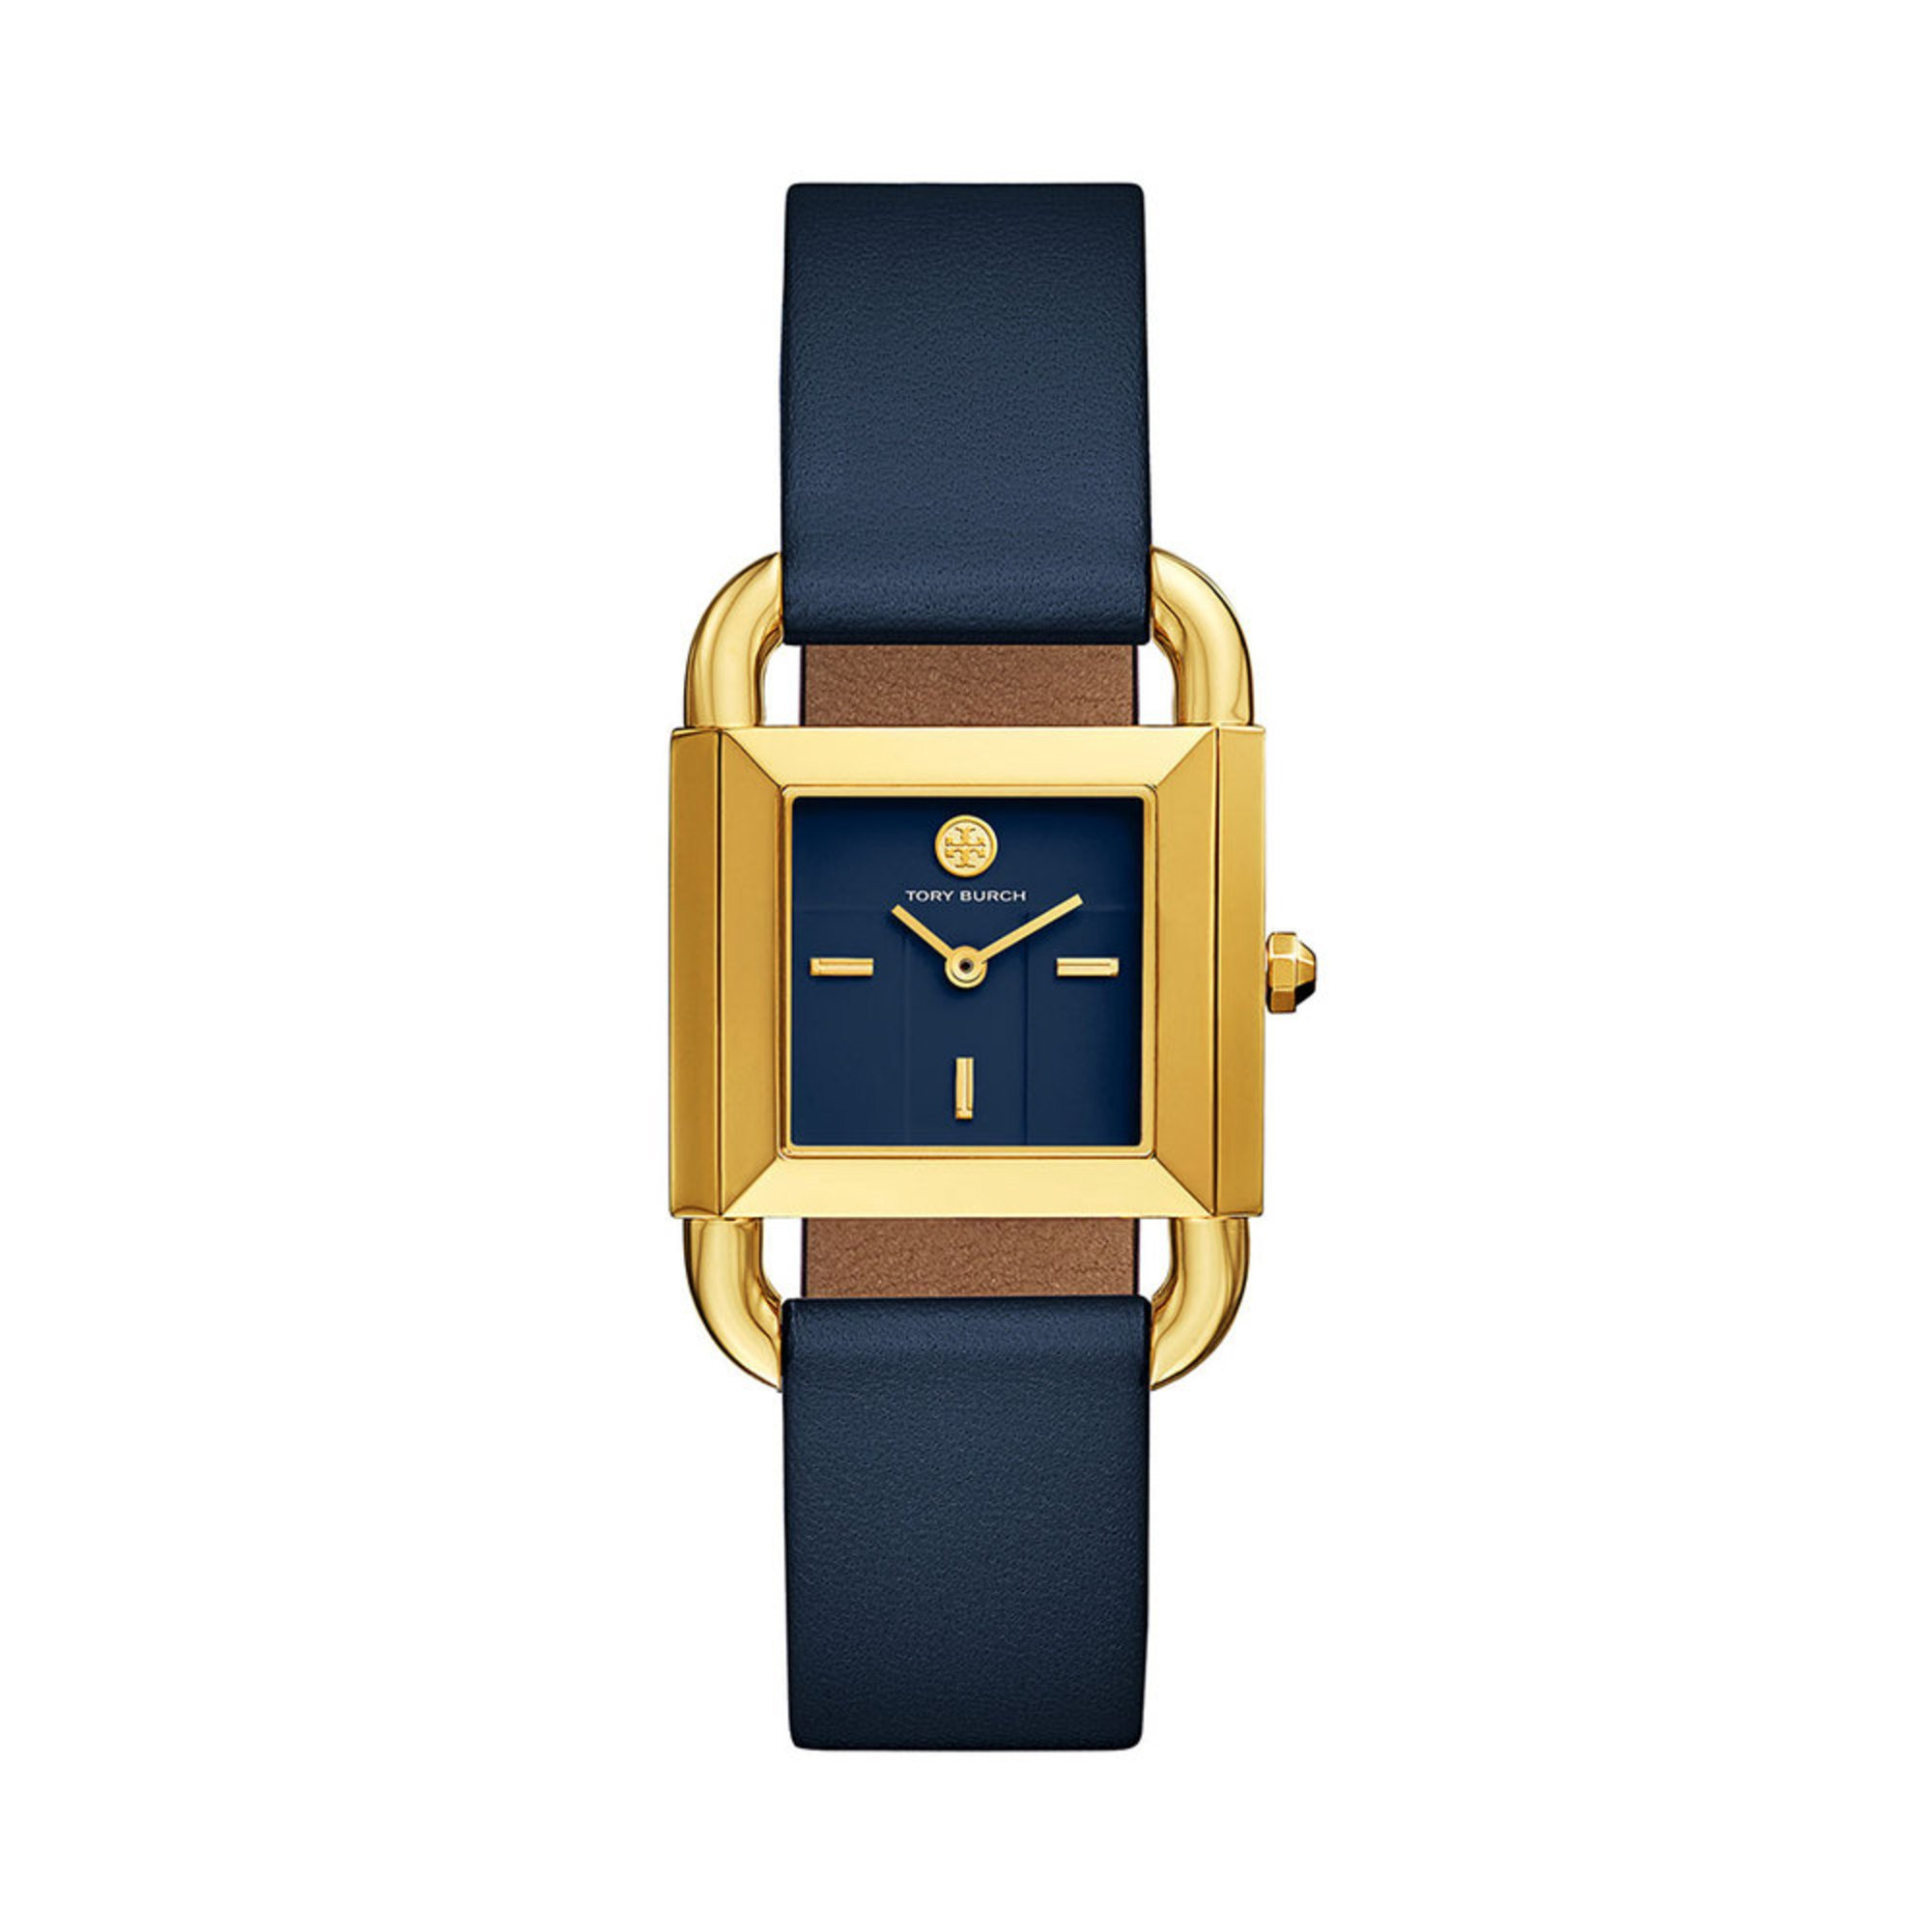 62b145325cbb Tory Burch Women s Phipps Two Hand Navy Blue Leather Strap Watch ...